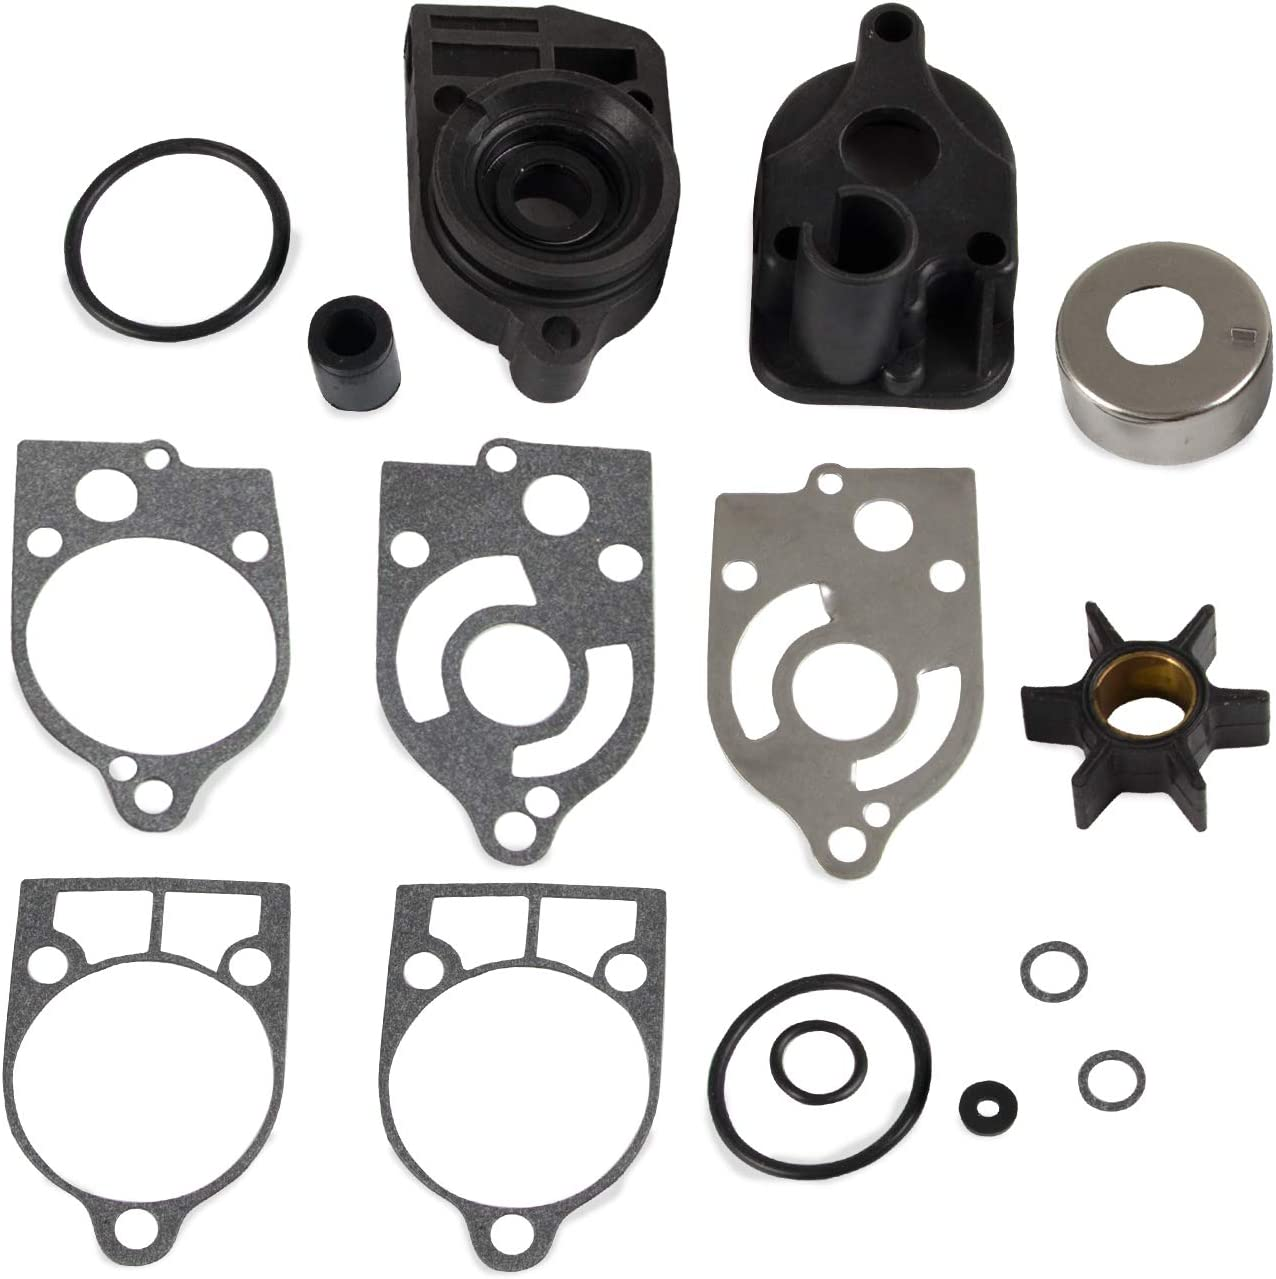 Water Pump Housing Repair Kit Compatible with Mercury Marine 46-77177A3, Fit for 30 HP - 70 HP, Sierra 18-3324